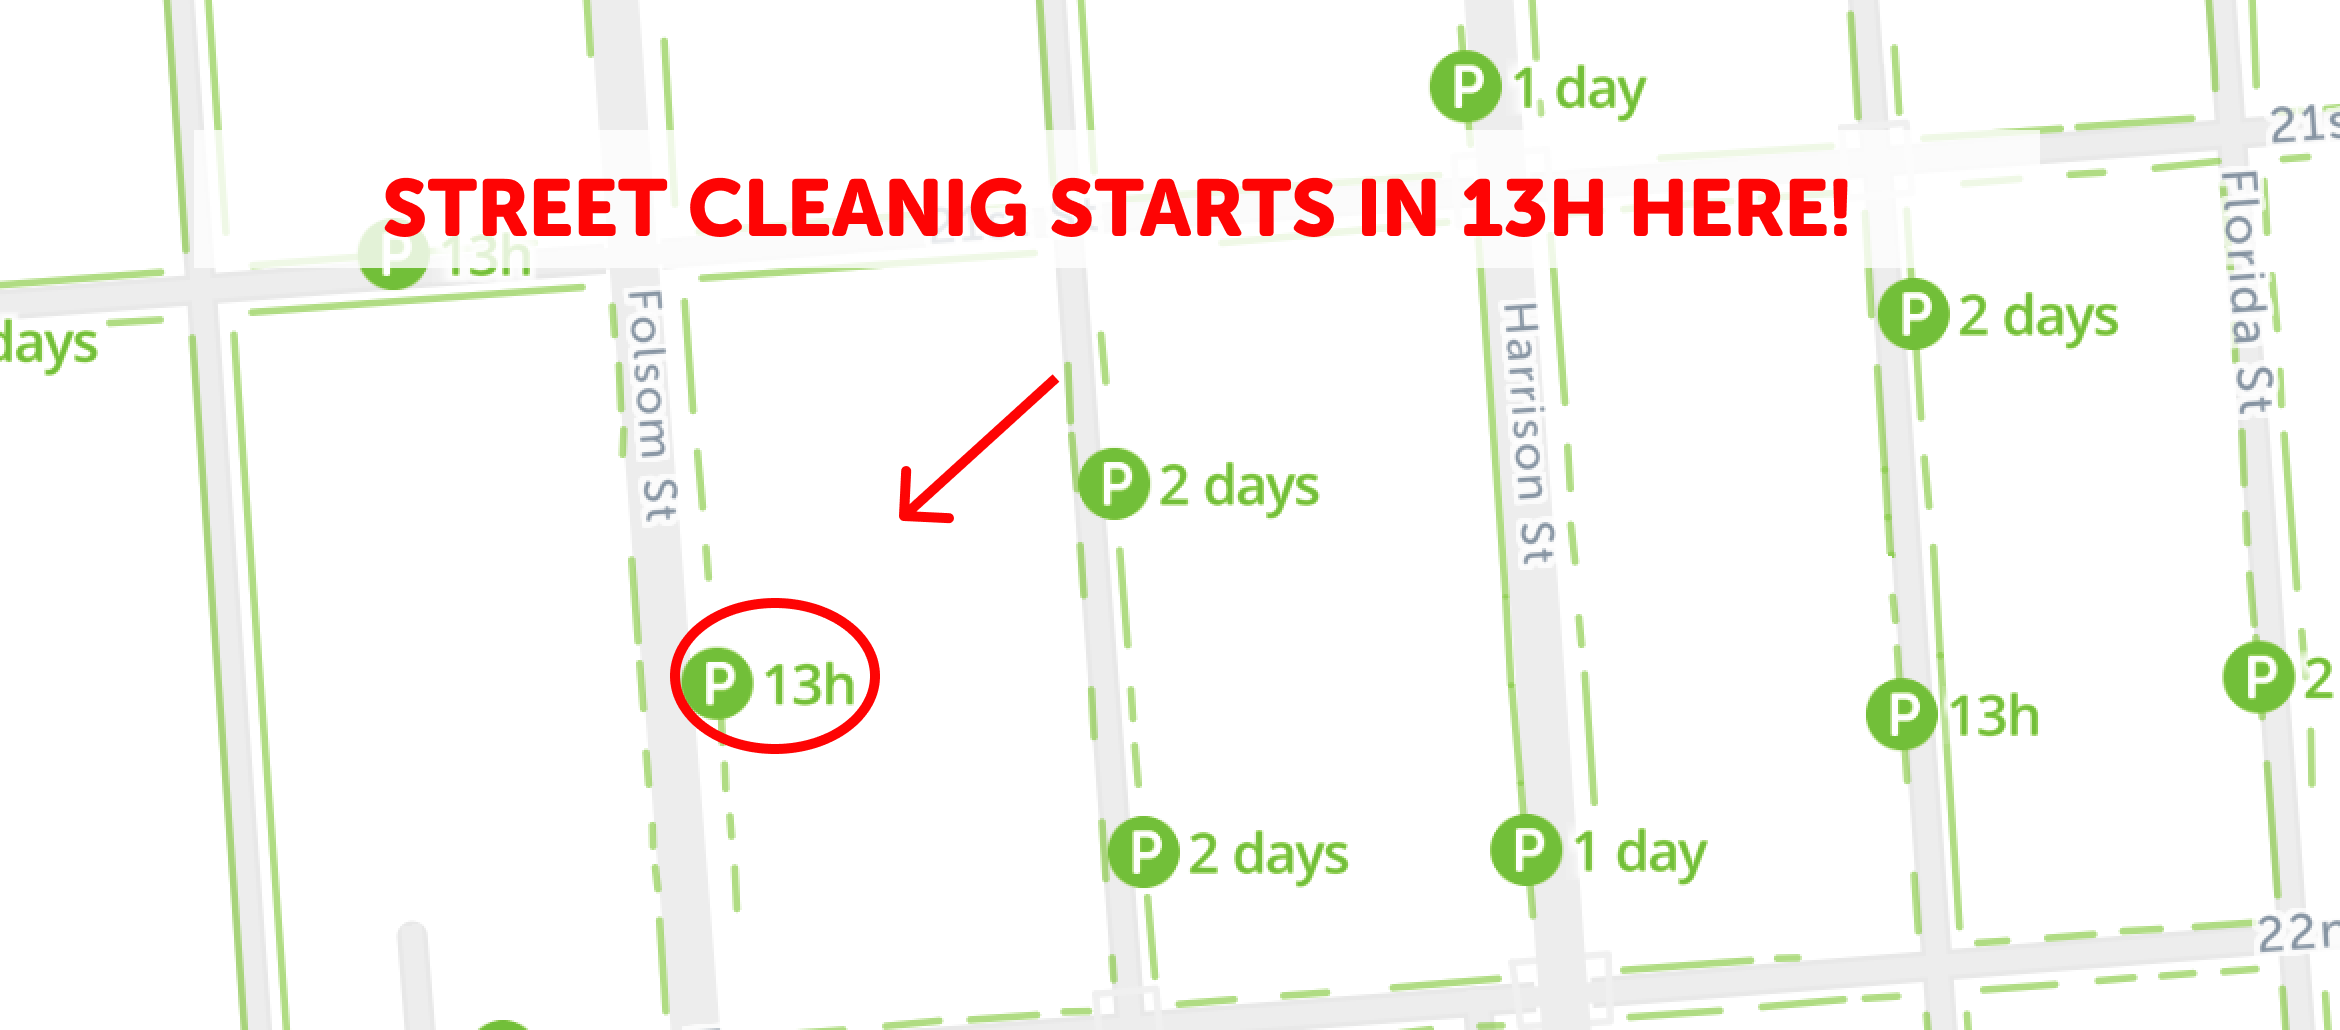 Does Street Sweeping Work On Christmas Eve 2020 Street Cleaning SF Rules, 2020 Map & Holidays Schedule!